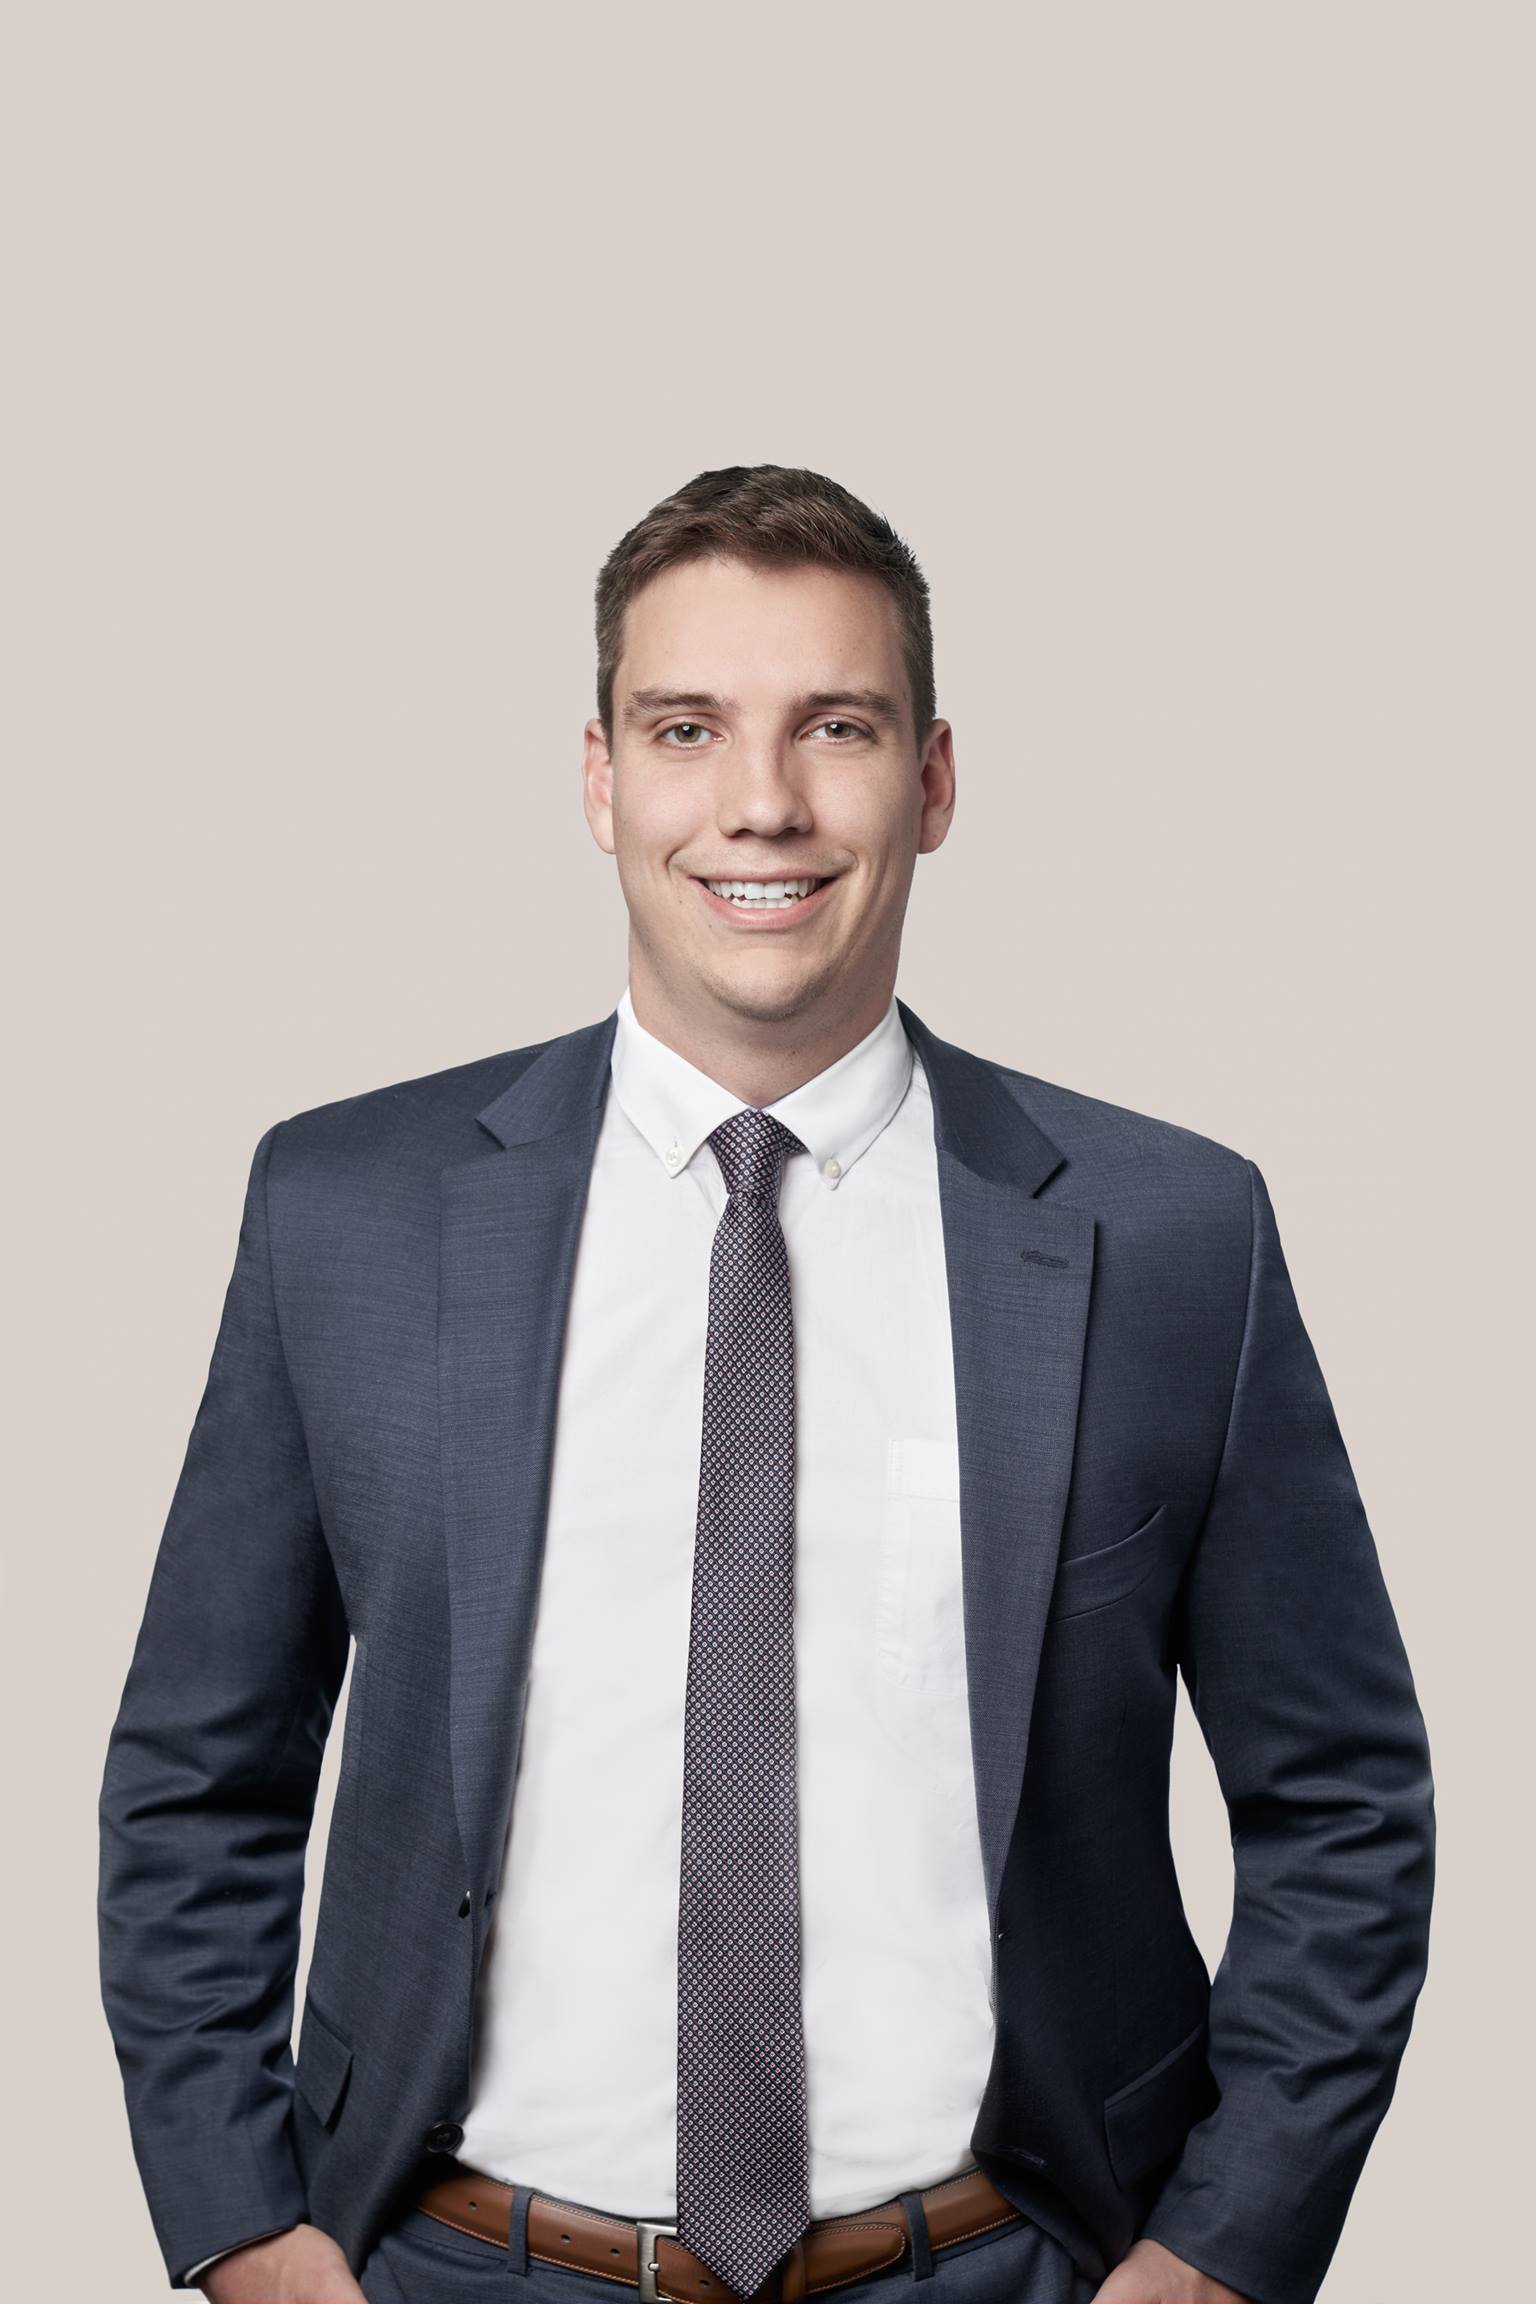 Frédéric St-Jean | Summer Law Student in Québec City